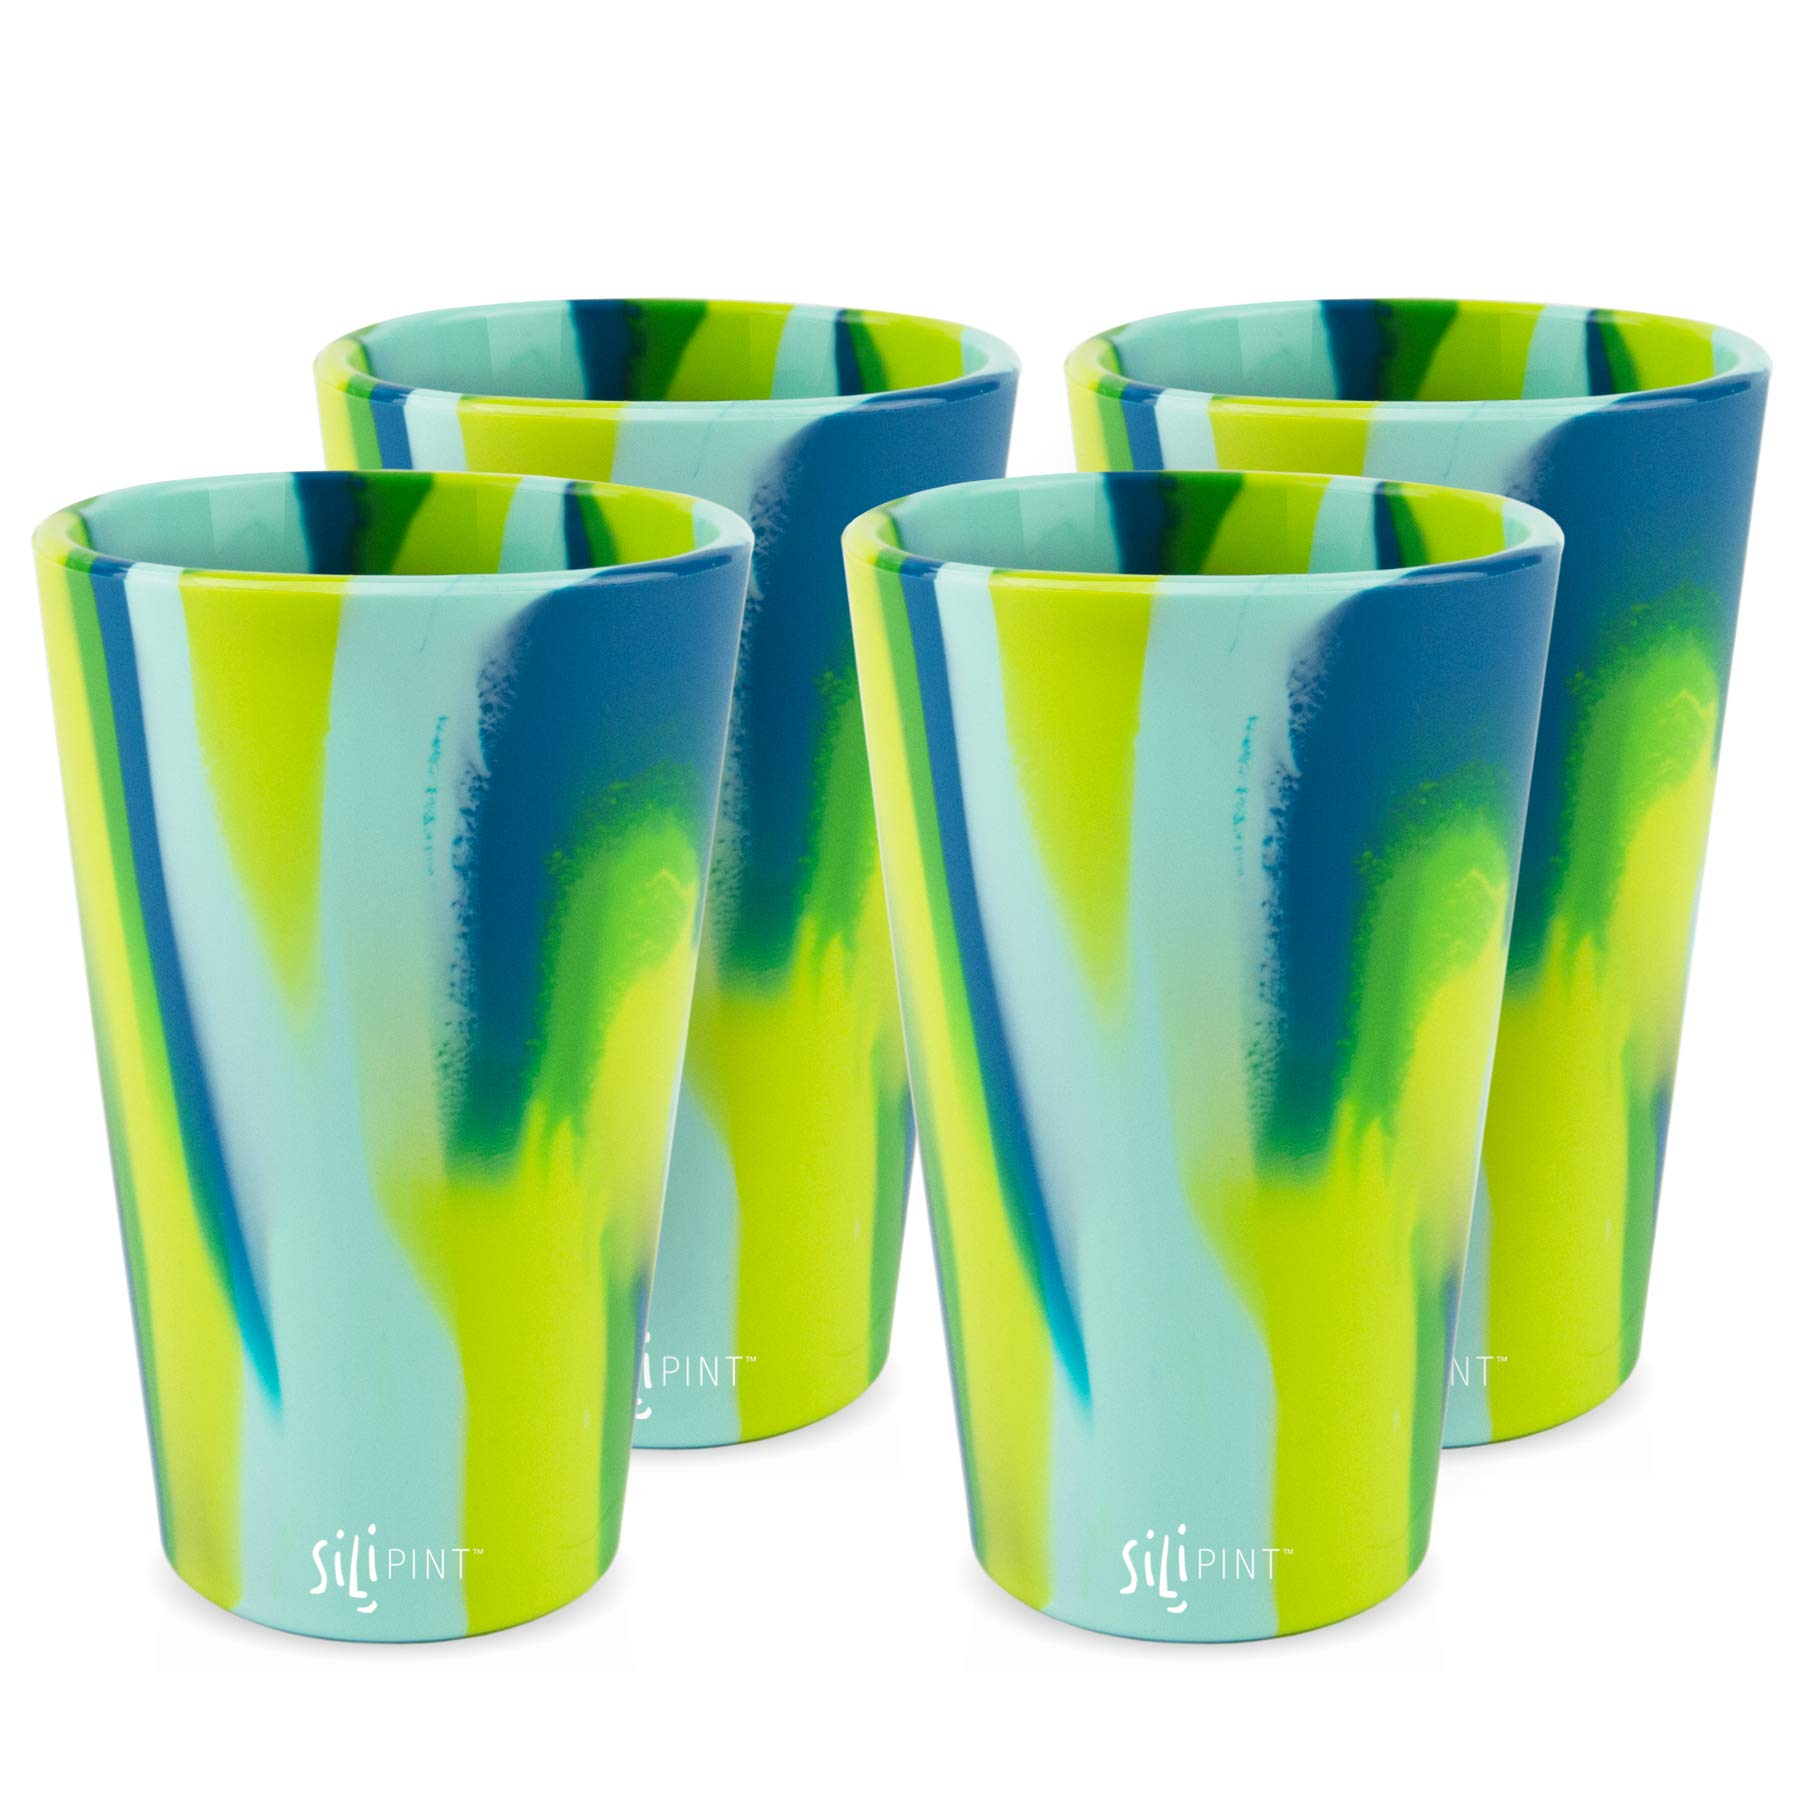 Silipint Silicone Pint Glass Set, Patented, BPA-Free, Shatter-proof, Unbreakable Silicone Cup Drinkware (4-Pack Sea Swirl) by Silipint